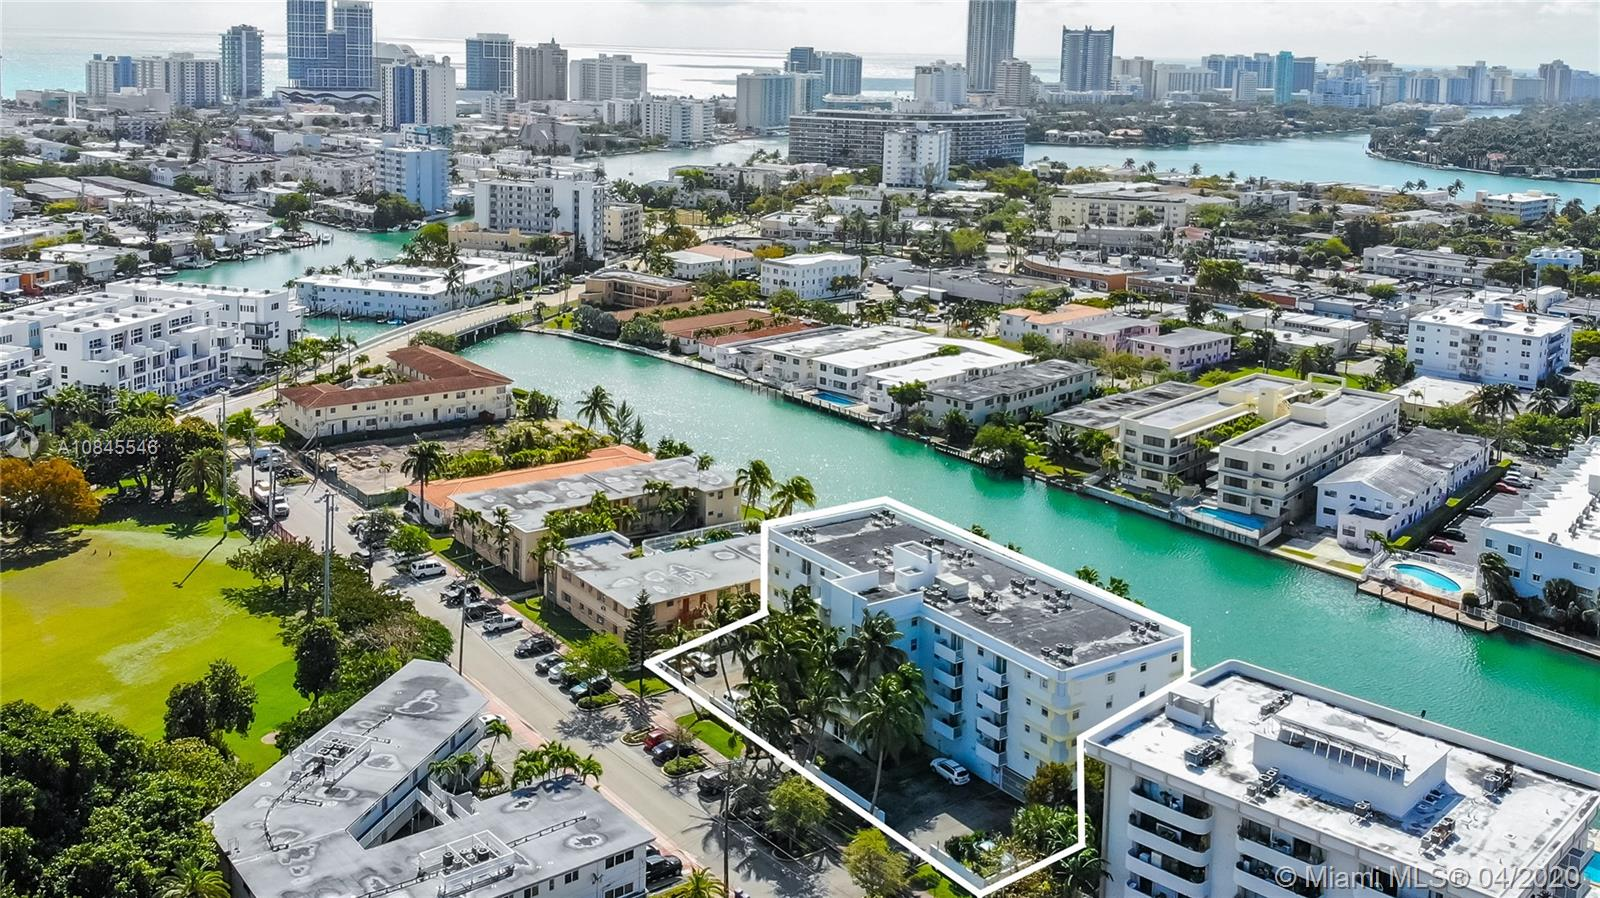 80 S Shore Dr # 407, Miami Beach, Florida 33141, 1 Bedroom Bedrooms, ,1 BathroomBathrooms,Residential,For Sale,80 S Shore Dr # 407,A10845546